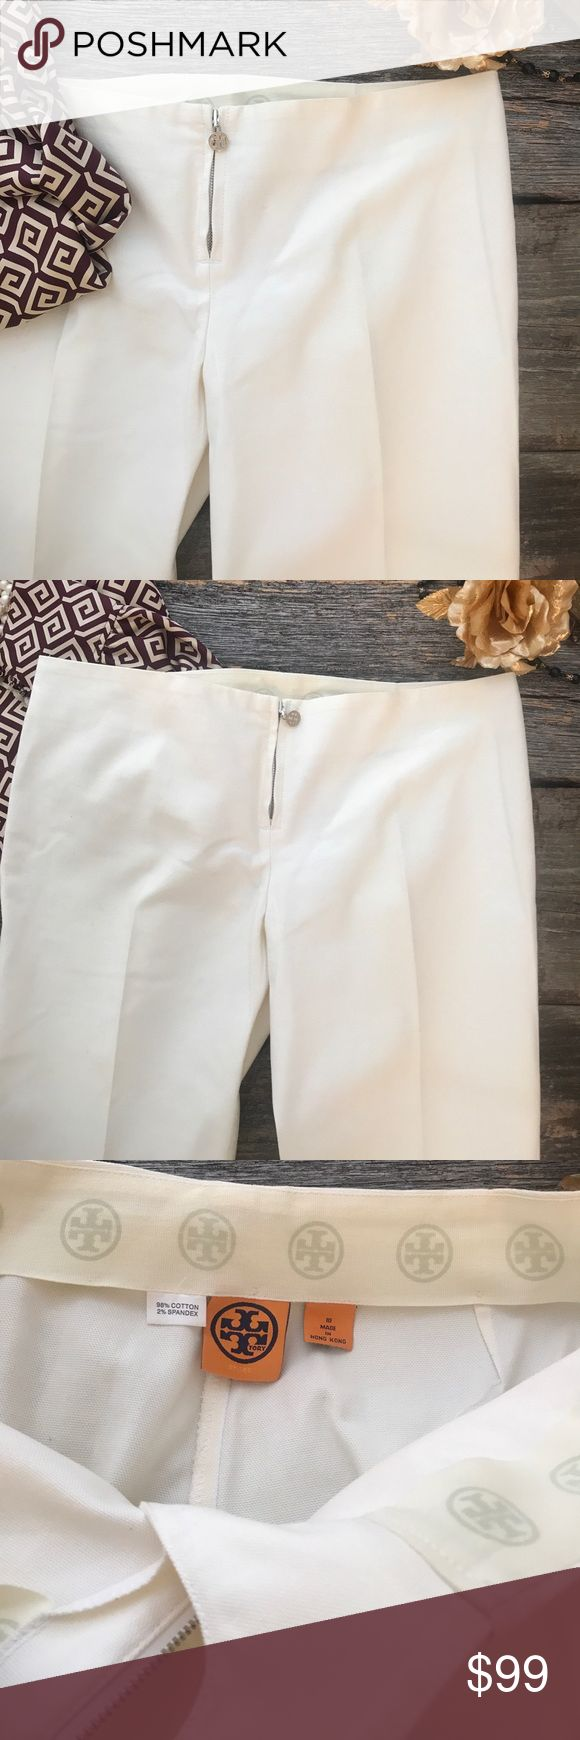 || Tory Burch || White Cotton Dress Trousers These creamy white cotton pant (98% cotton with 2% spandex) complete your outfit with the silk tunic (shown in picture and listed separately). Mid-century modern flair with a low on the hip with a zipper at waist. Silver Tory logo toggle. Great detailing at the back knee. Note to buyer: white pants get dirty and these have a few grey spots. I have reduced the price to support these very minor spots. Inseam is 33 inches. Waist is 34.5 inches. Tory…